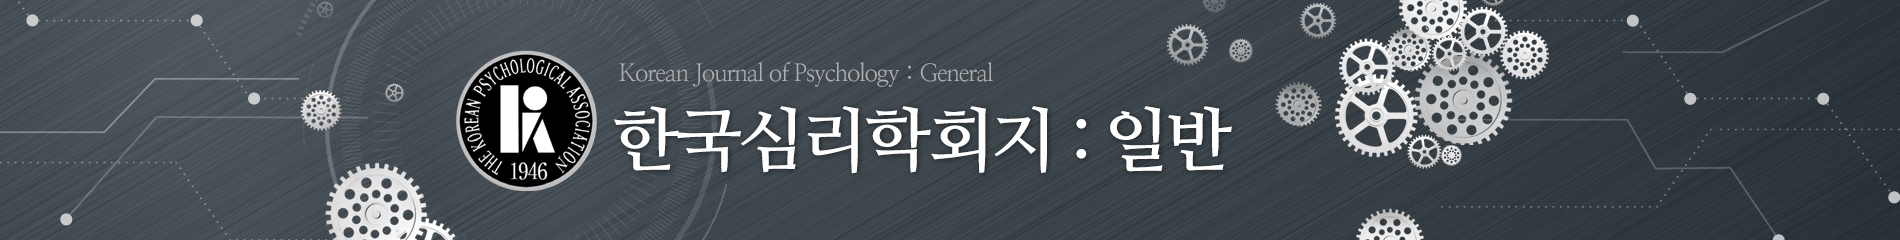 Korean Journal of Psychology : General